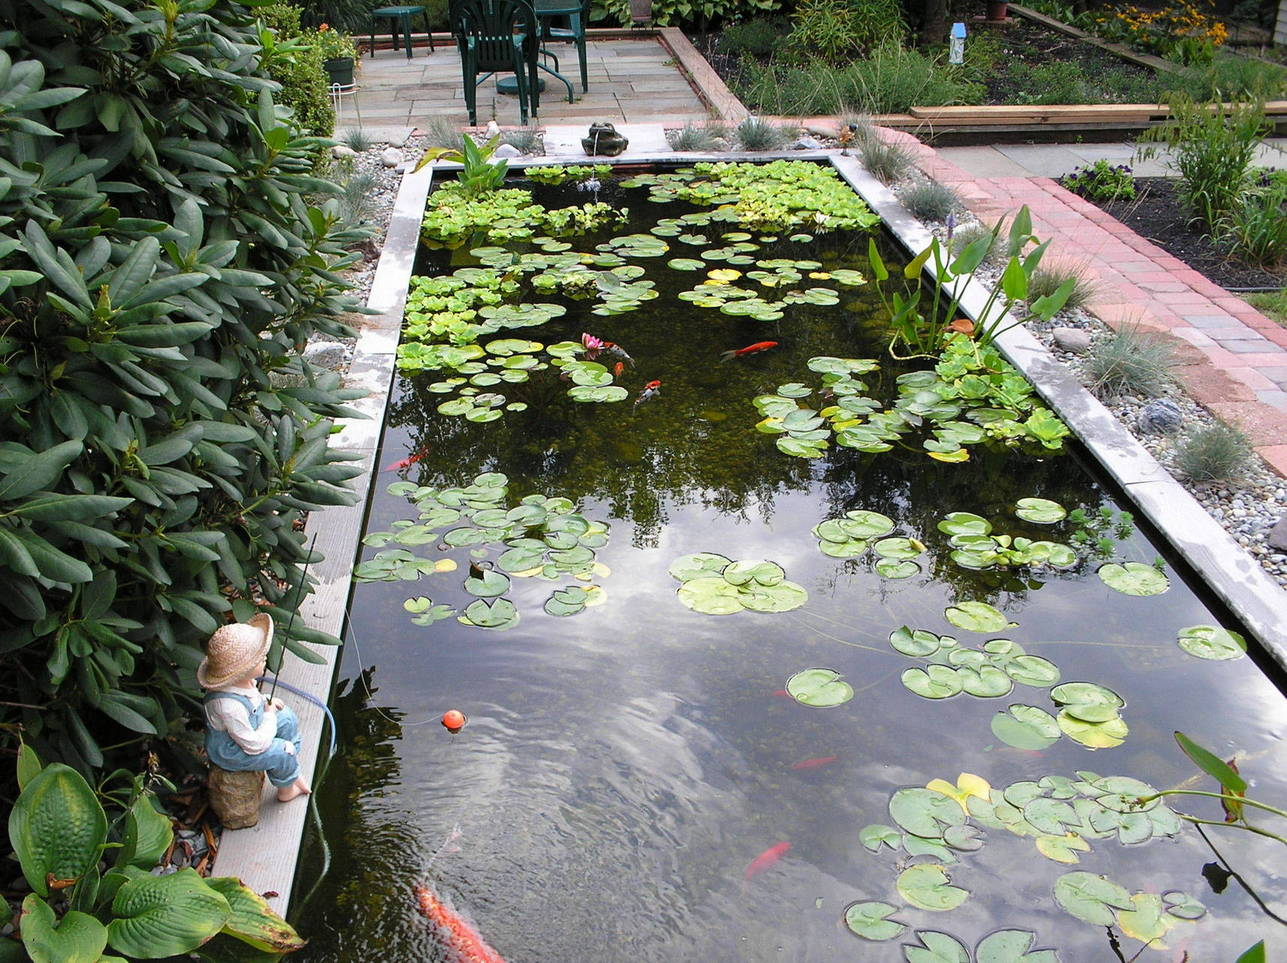 Big koi fish pond design ideas home trendy for Backyard koi pond ideas